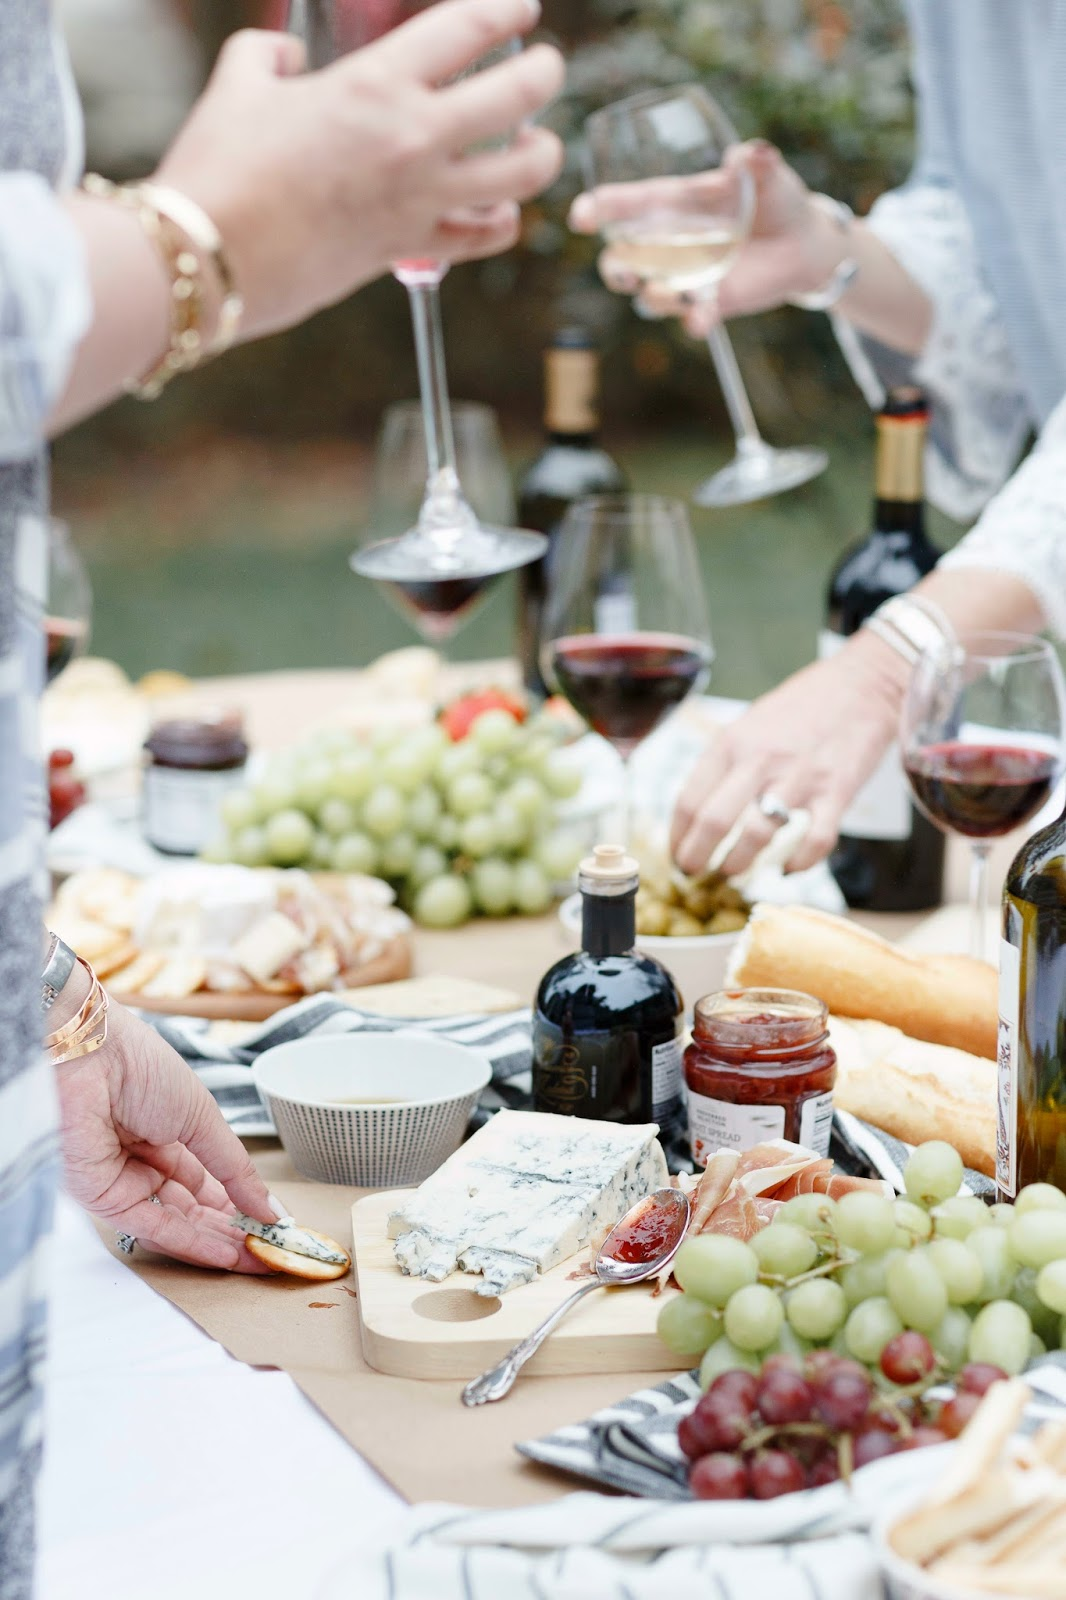 How To Plan a Gorgeous Wine and Cheese Party (without breaking the bank!)